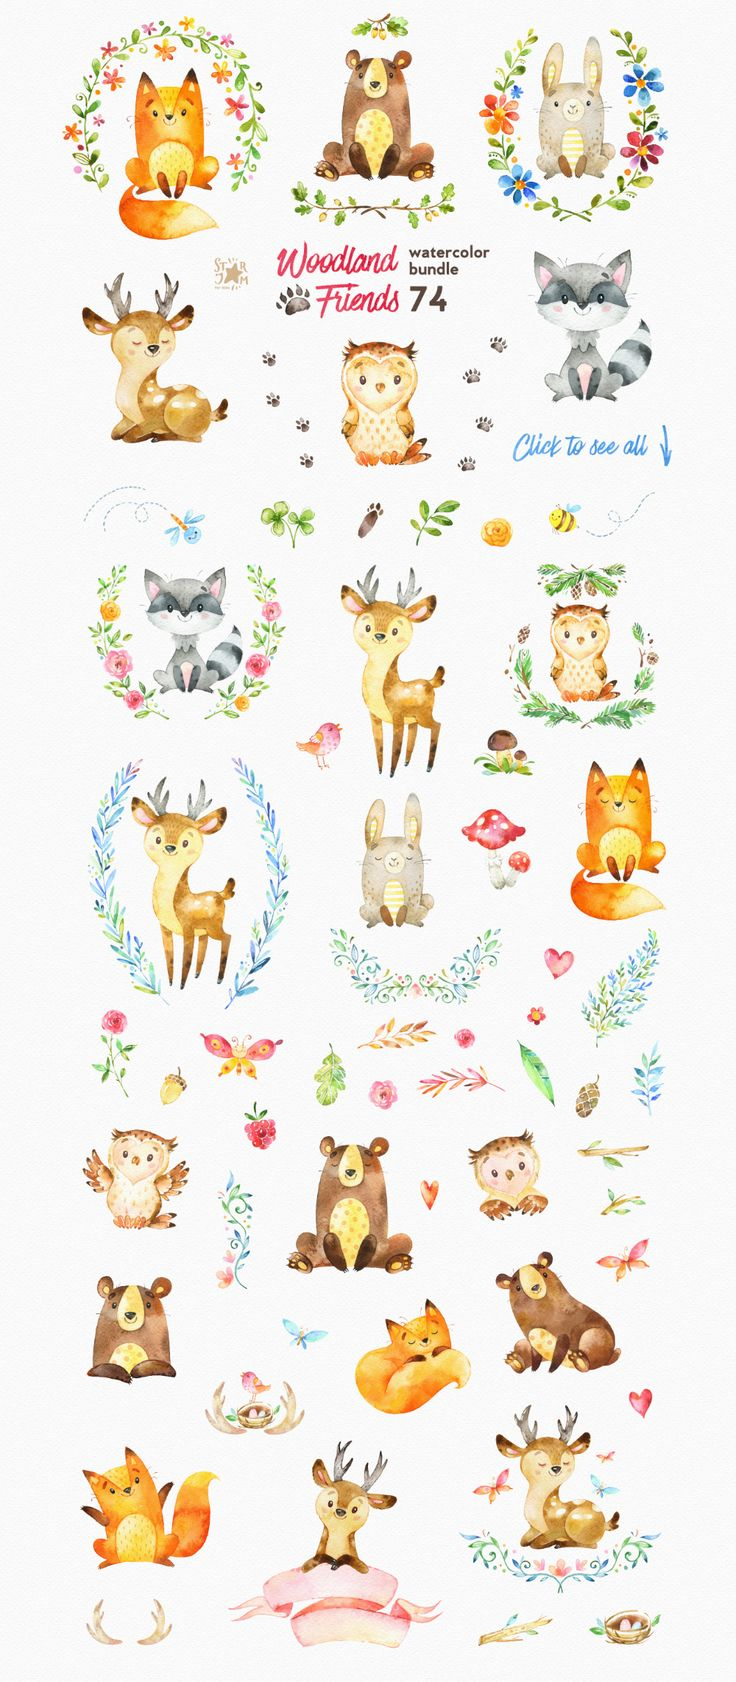 How adorable are these? The perfect woodland animal friends for DIY invitations, kids projects, art and more. (watercolor bundle illustrations)